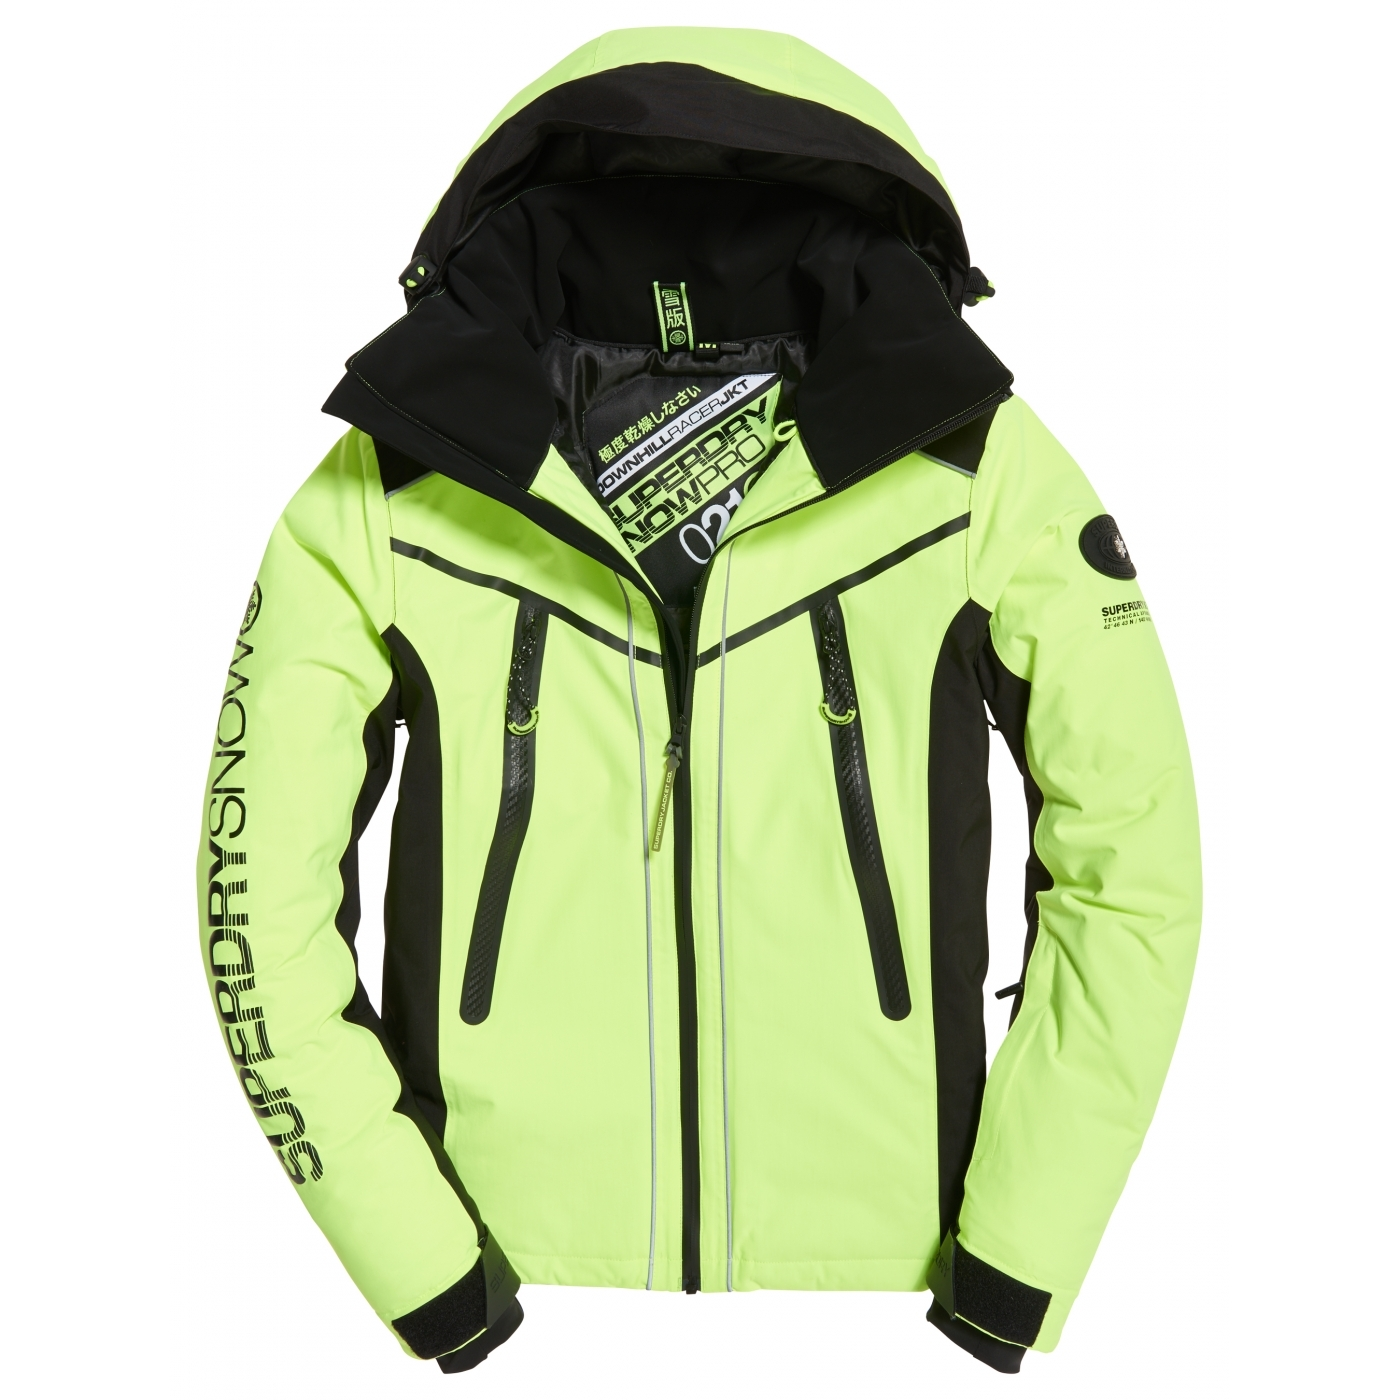 tout neuf 76935 3a6c7 Veste De Ski Superdry Downhill Racer Padded Jacket Yellow